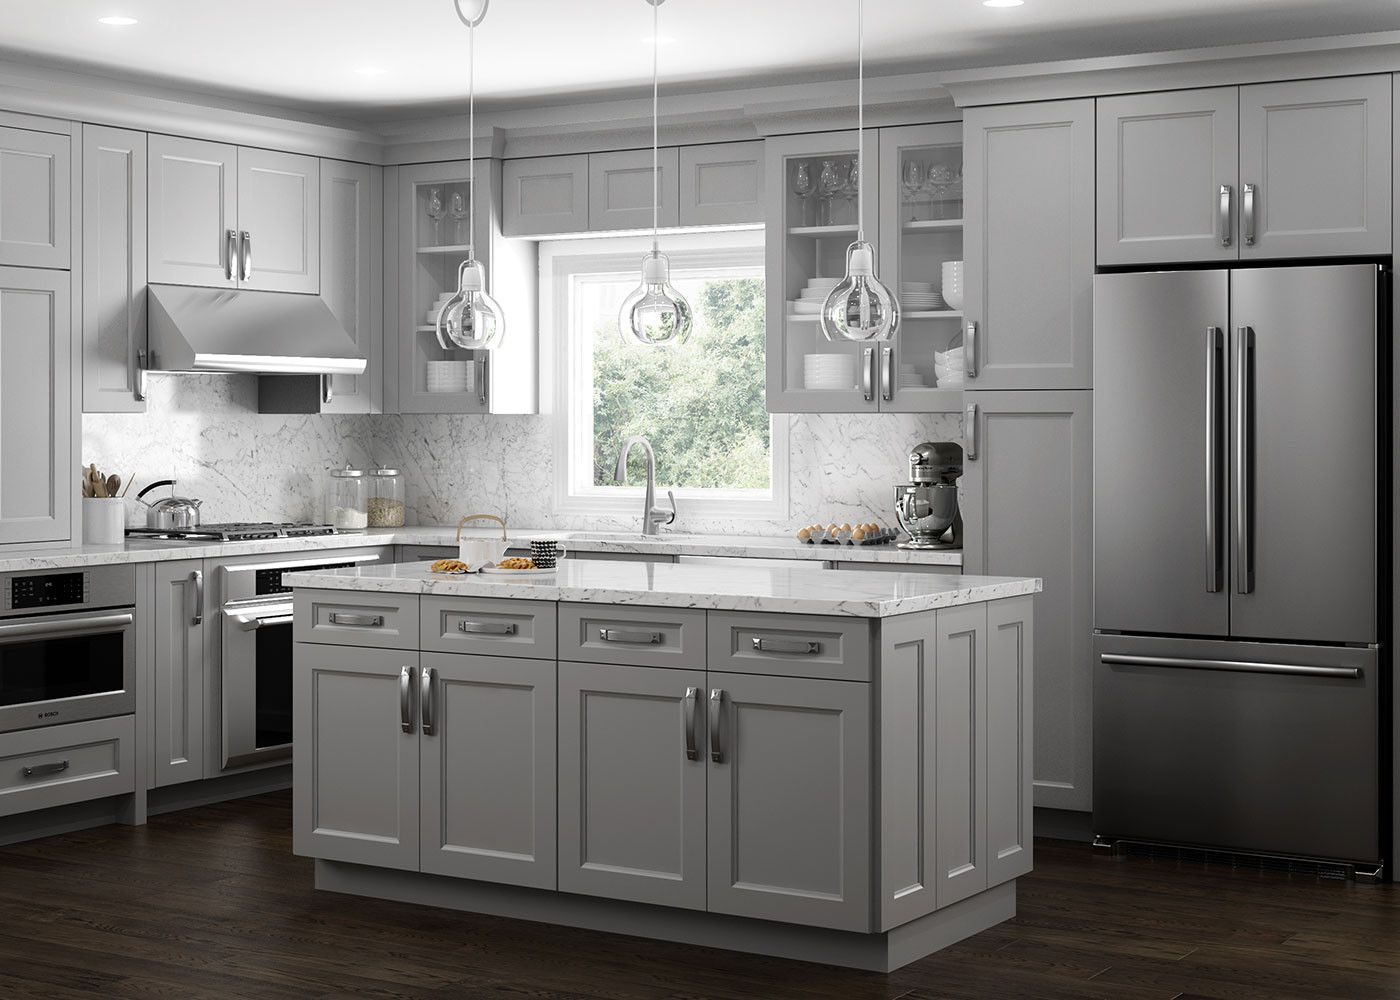 77 Cabinet Warehouse City Of Industry Unique Kitchen Backsplash Ideas Check More Cost Of Kitchen Cabinets Affordable Kitchen Cabinets Used Kitchen Cabinets